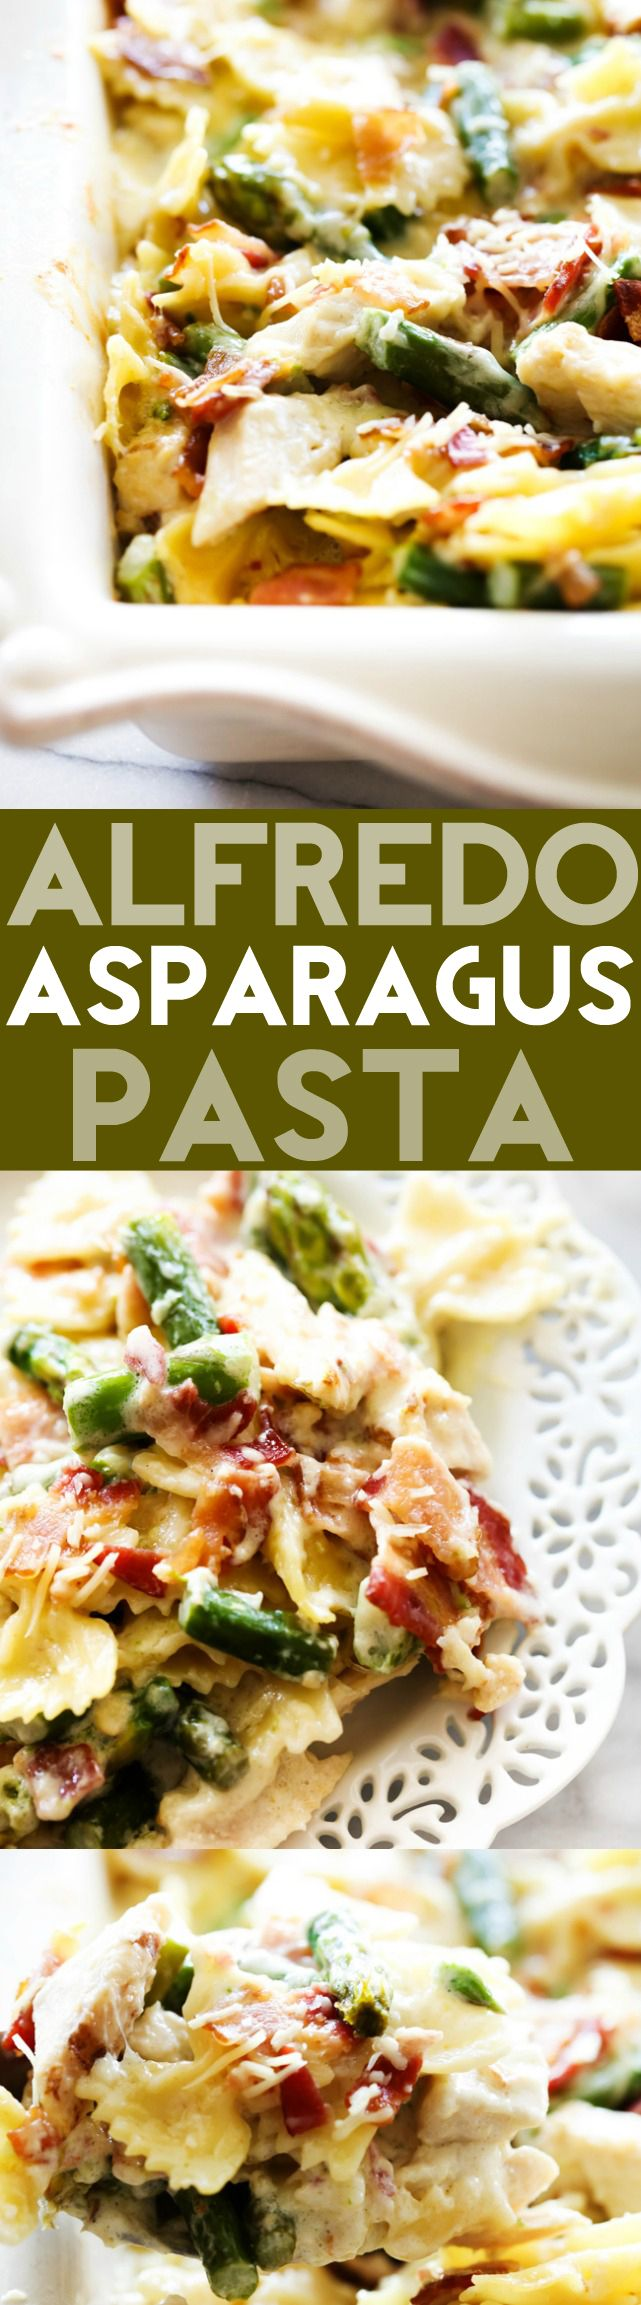 Alfredo Asparagus Pasta... A tasty and delightful dinner loaded with flavor and delicious ingredients! This will become a new family favorite!